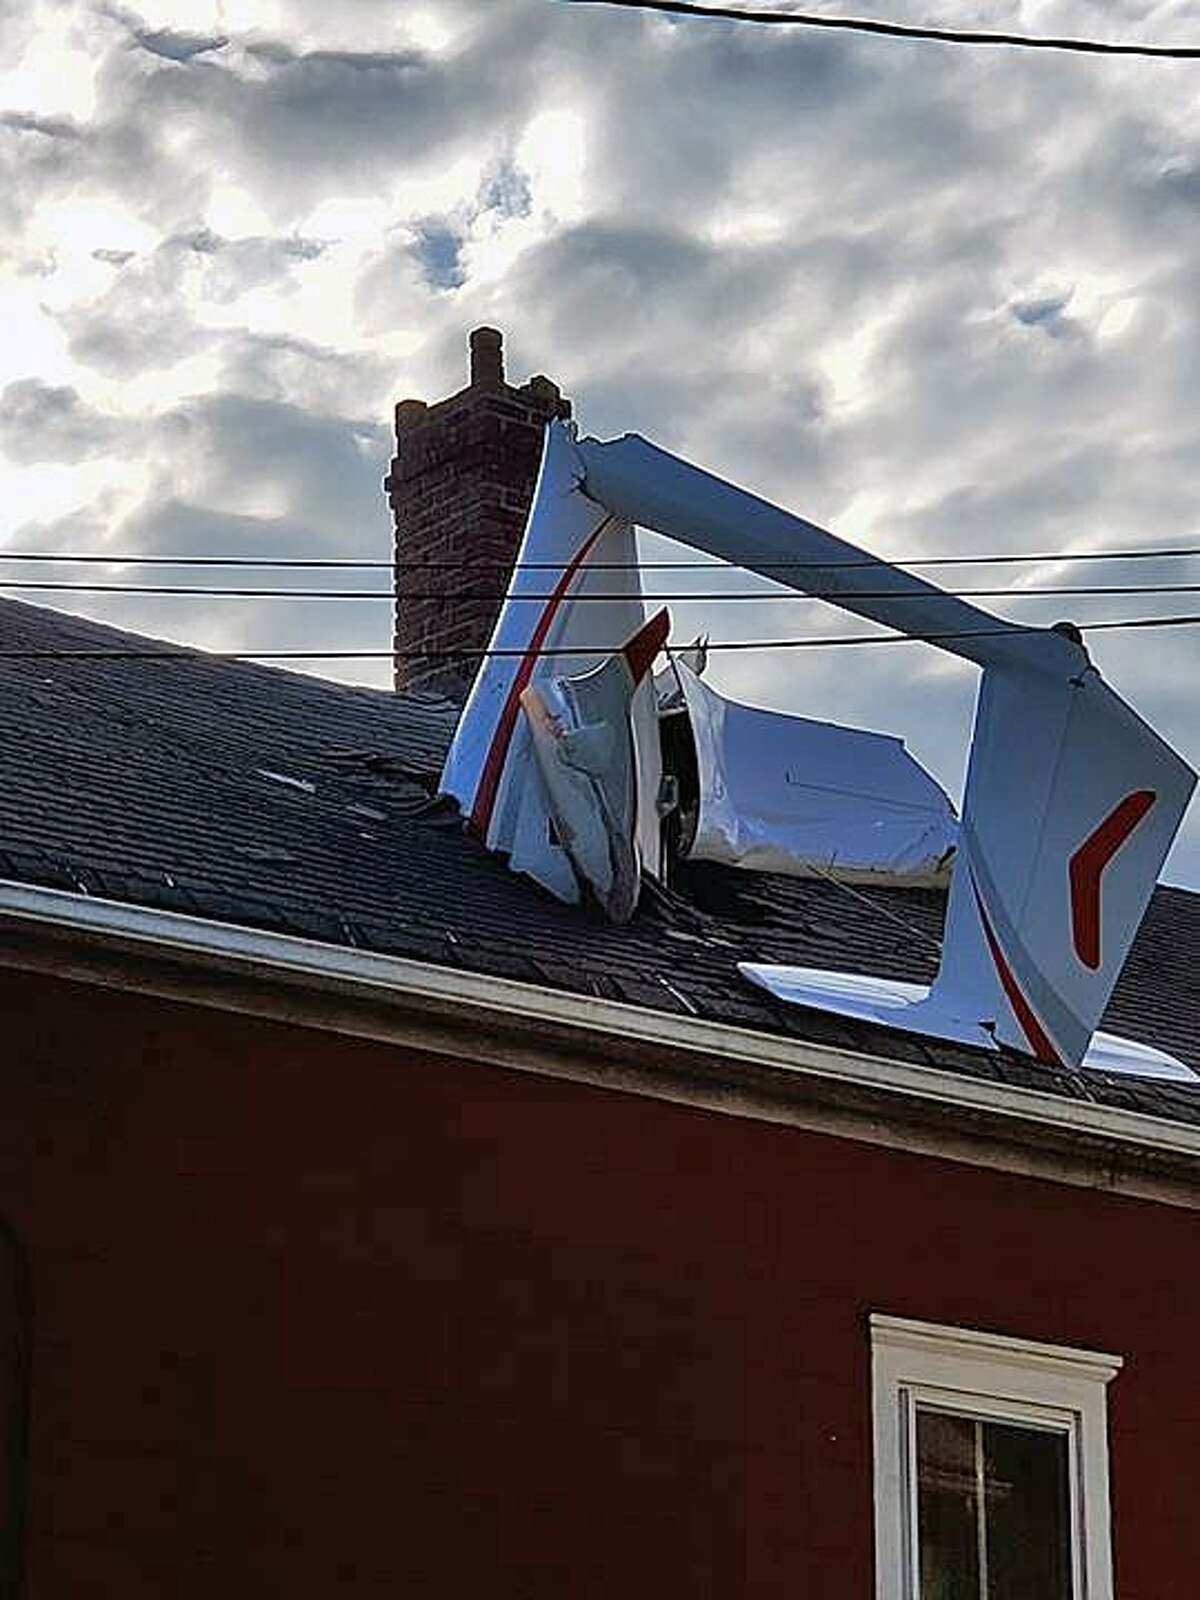 An image of the glider that crashed through the roof of a Golden Hill Avenue home in Danbury, Conn., on June 4, 2019.